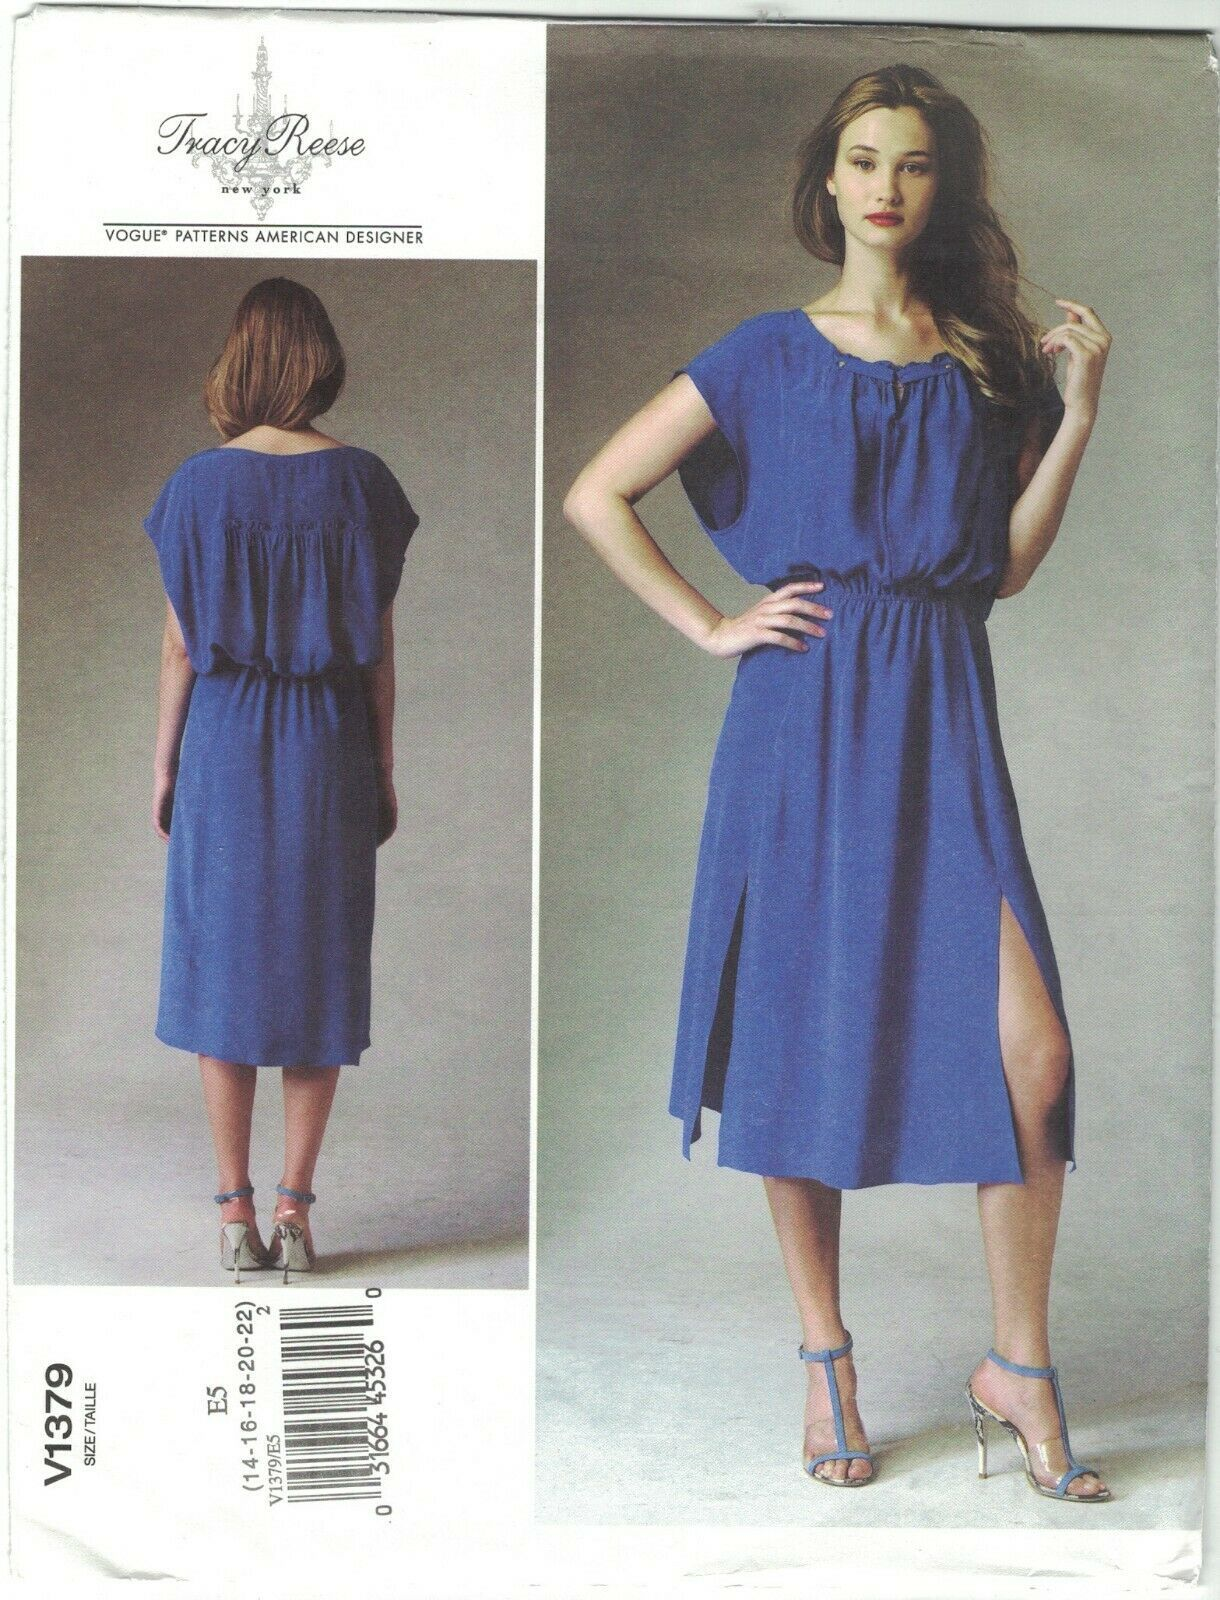 Primary image for Vogue 1379 Tracy Reese Boho Blouson Dress Side Slits Pattern Choose Size Uncut